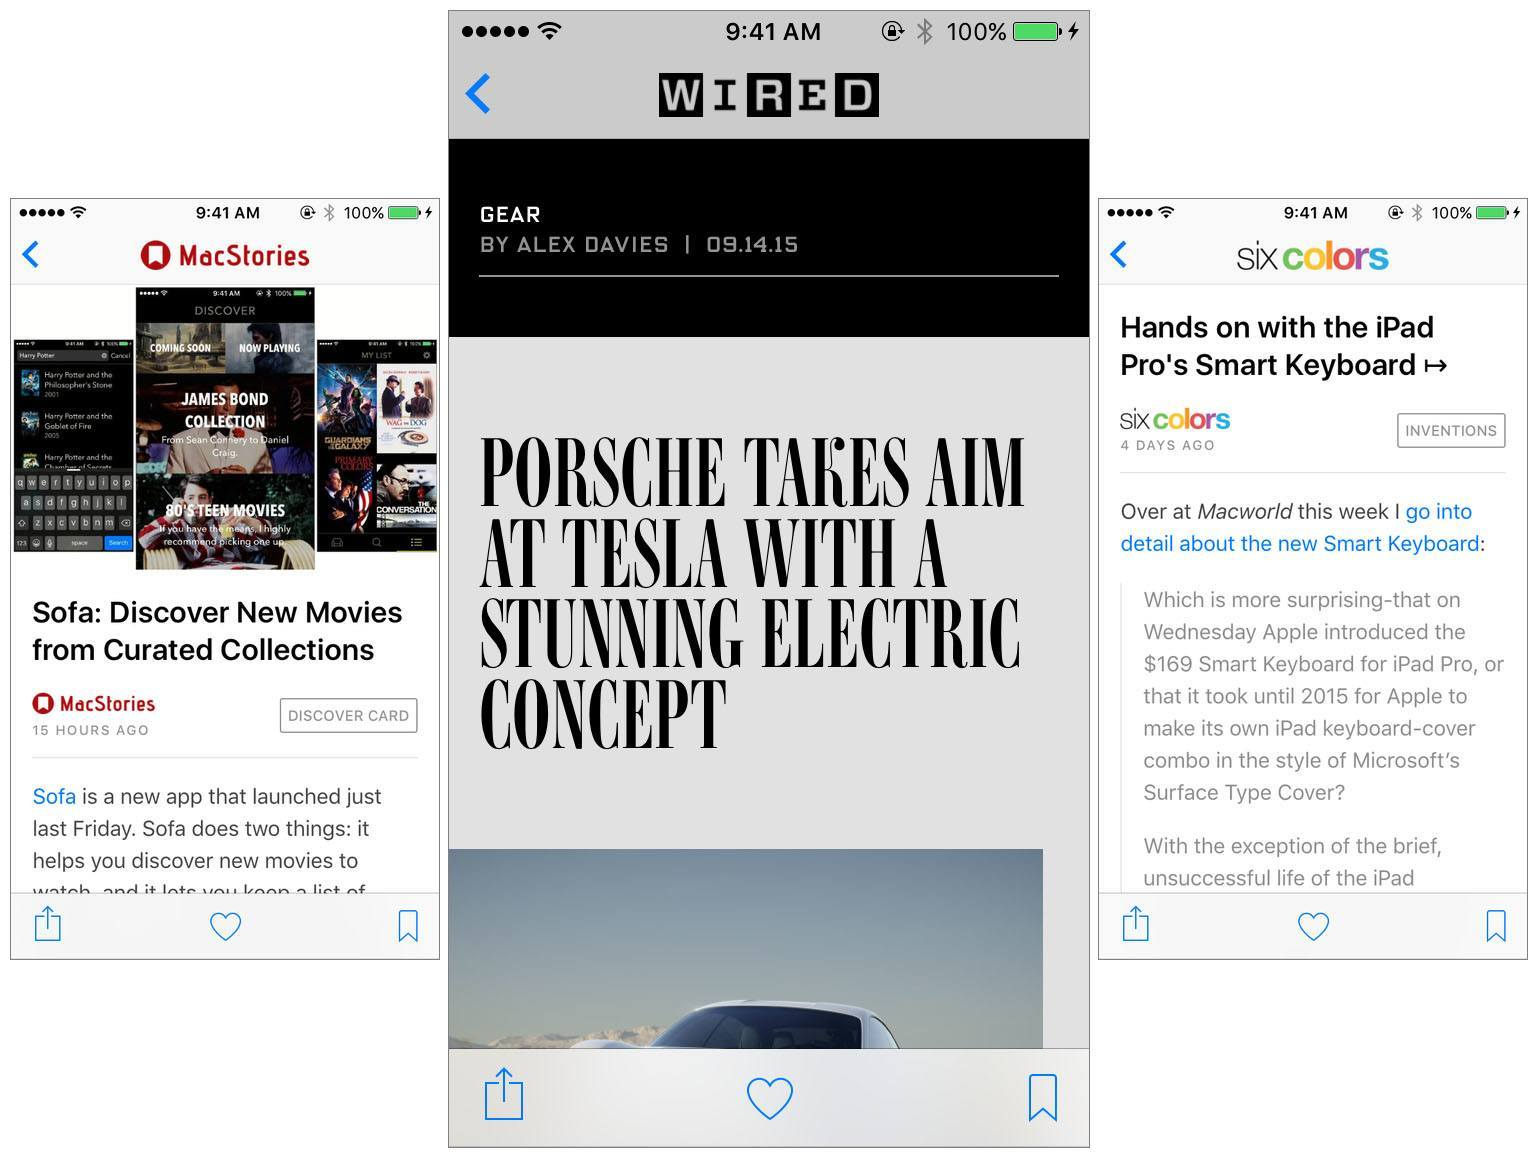 What it looks like to read a MacStories, Wired and Six Colors article in Apple News. Wired looks so unique because they are able to publish stories using the Apple News Format.